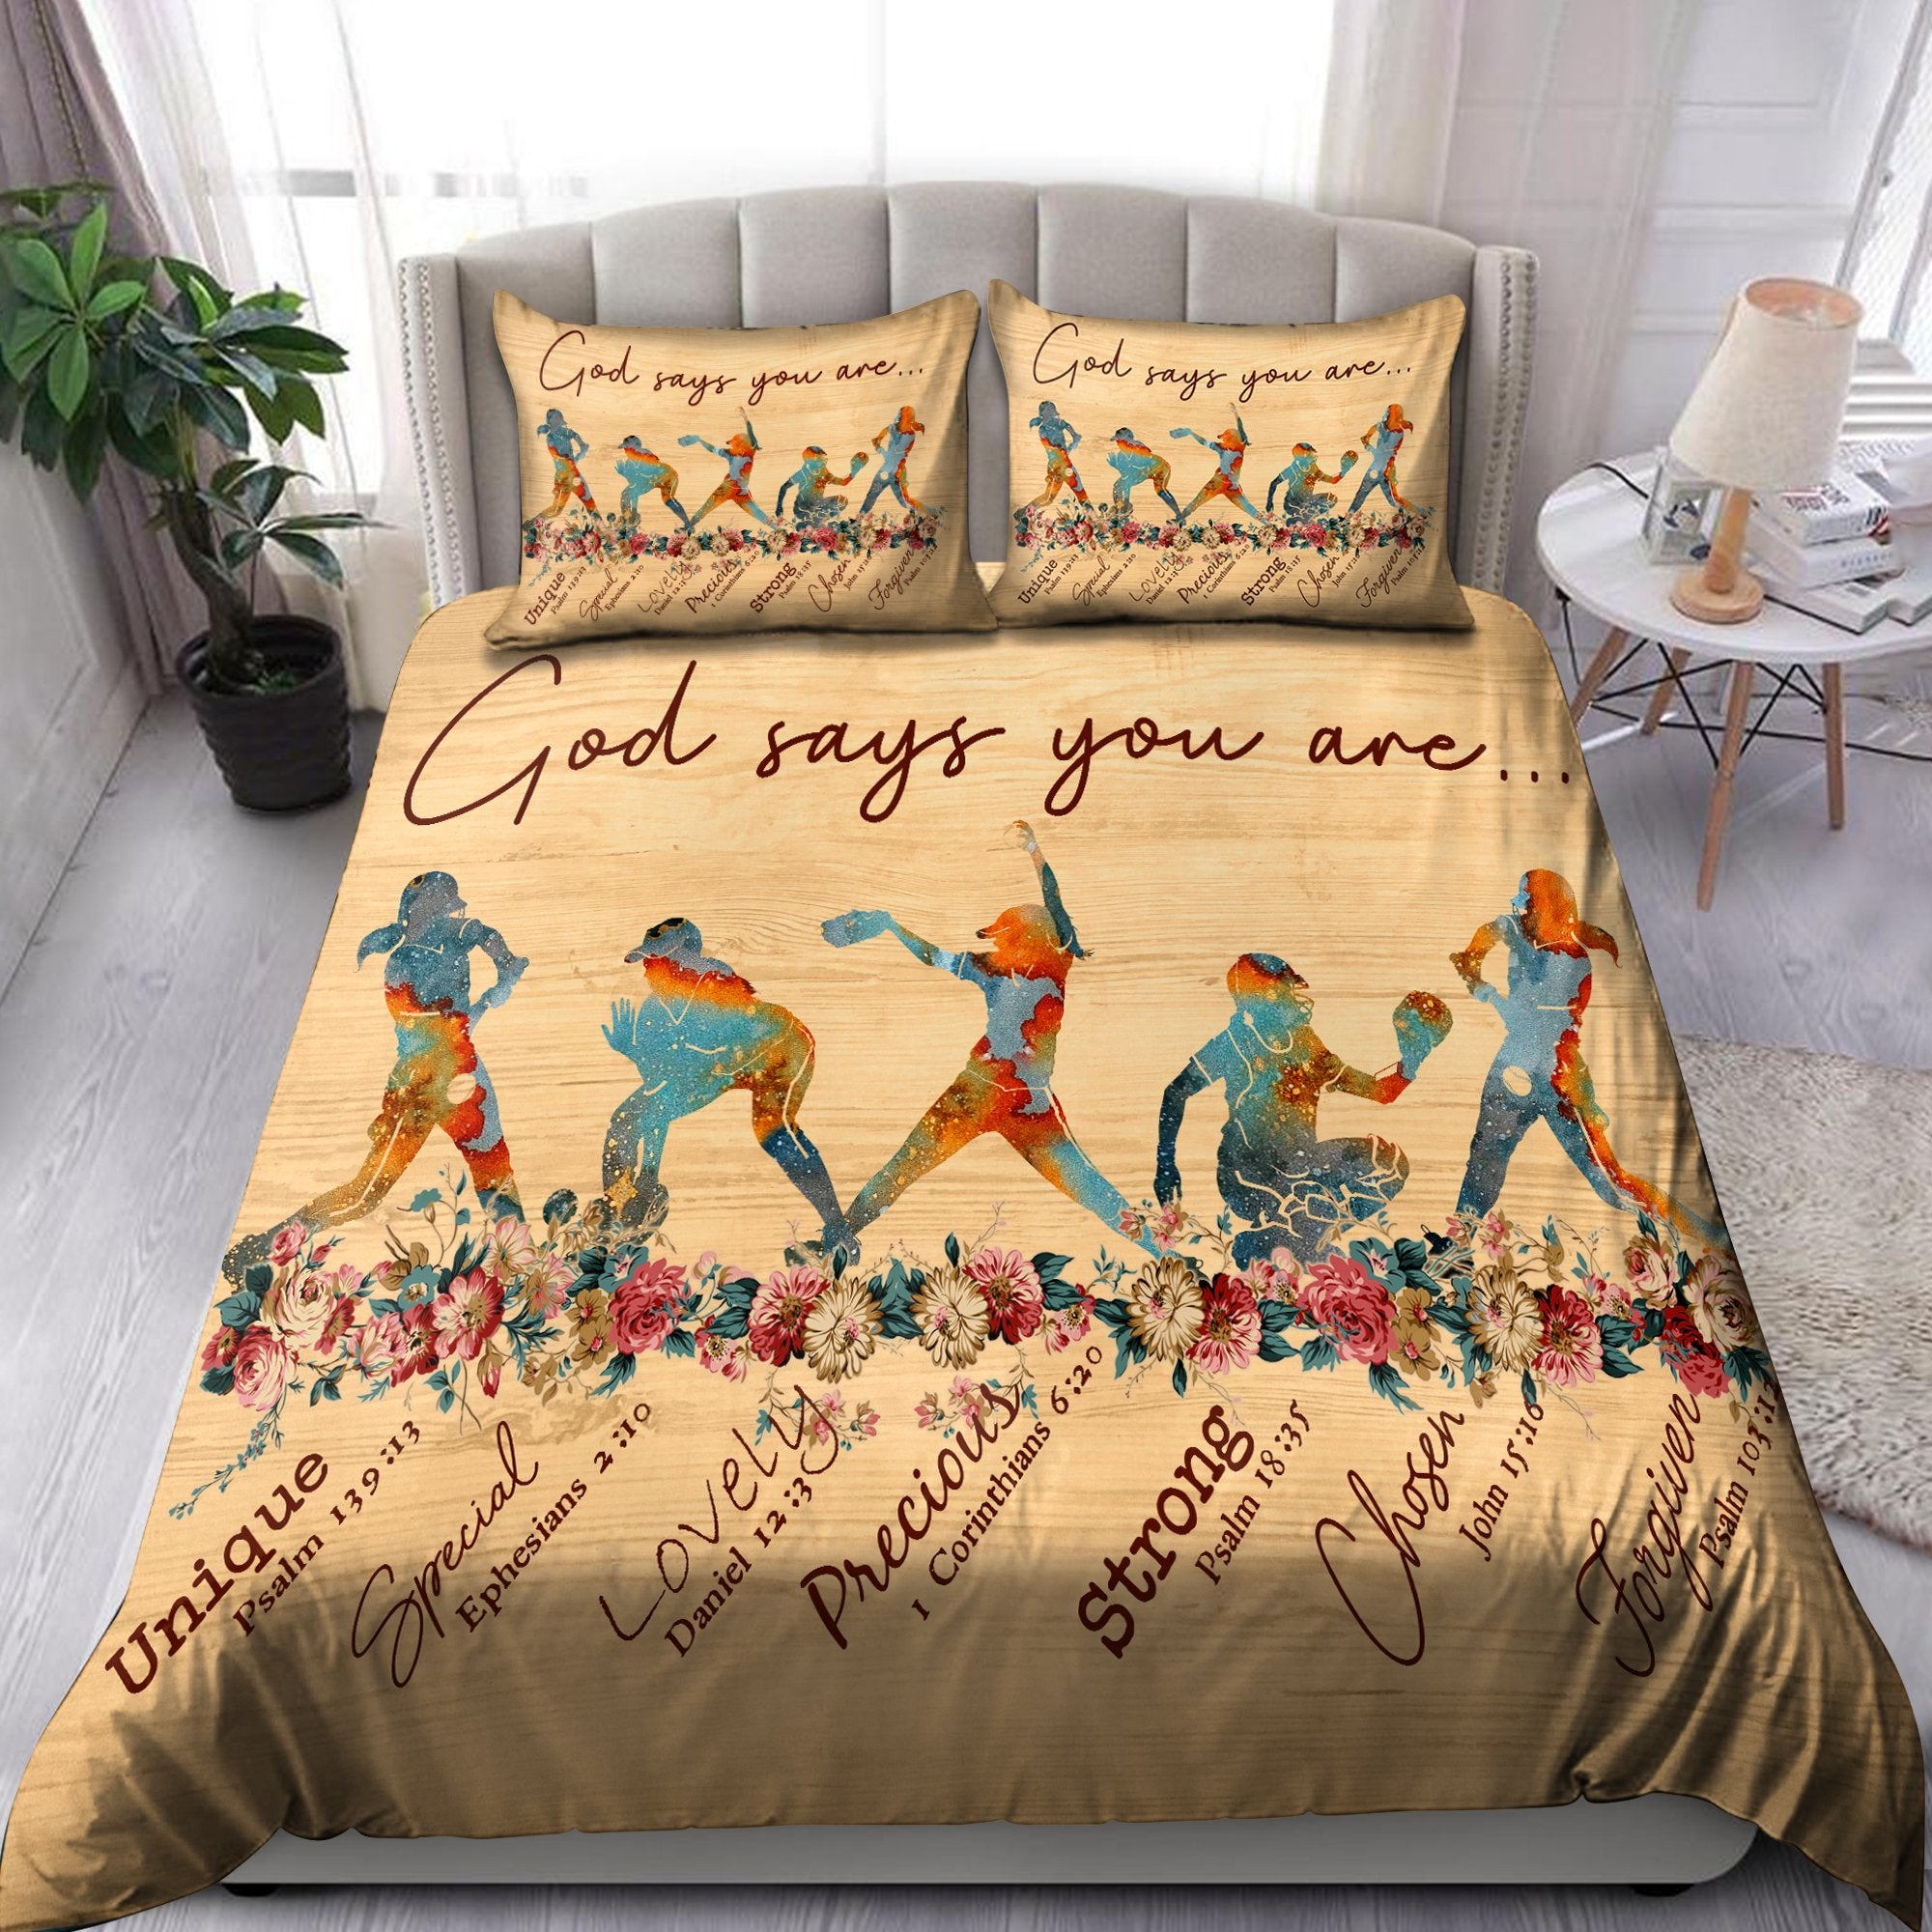 Softball-God Says You Are Bedding Set Pi20072002-Quilt-TA-Twin-Vibe Cosy™